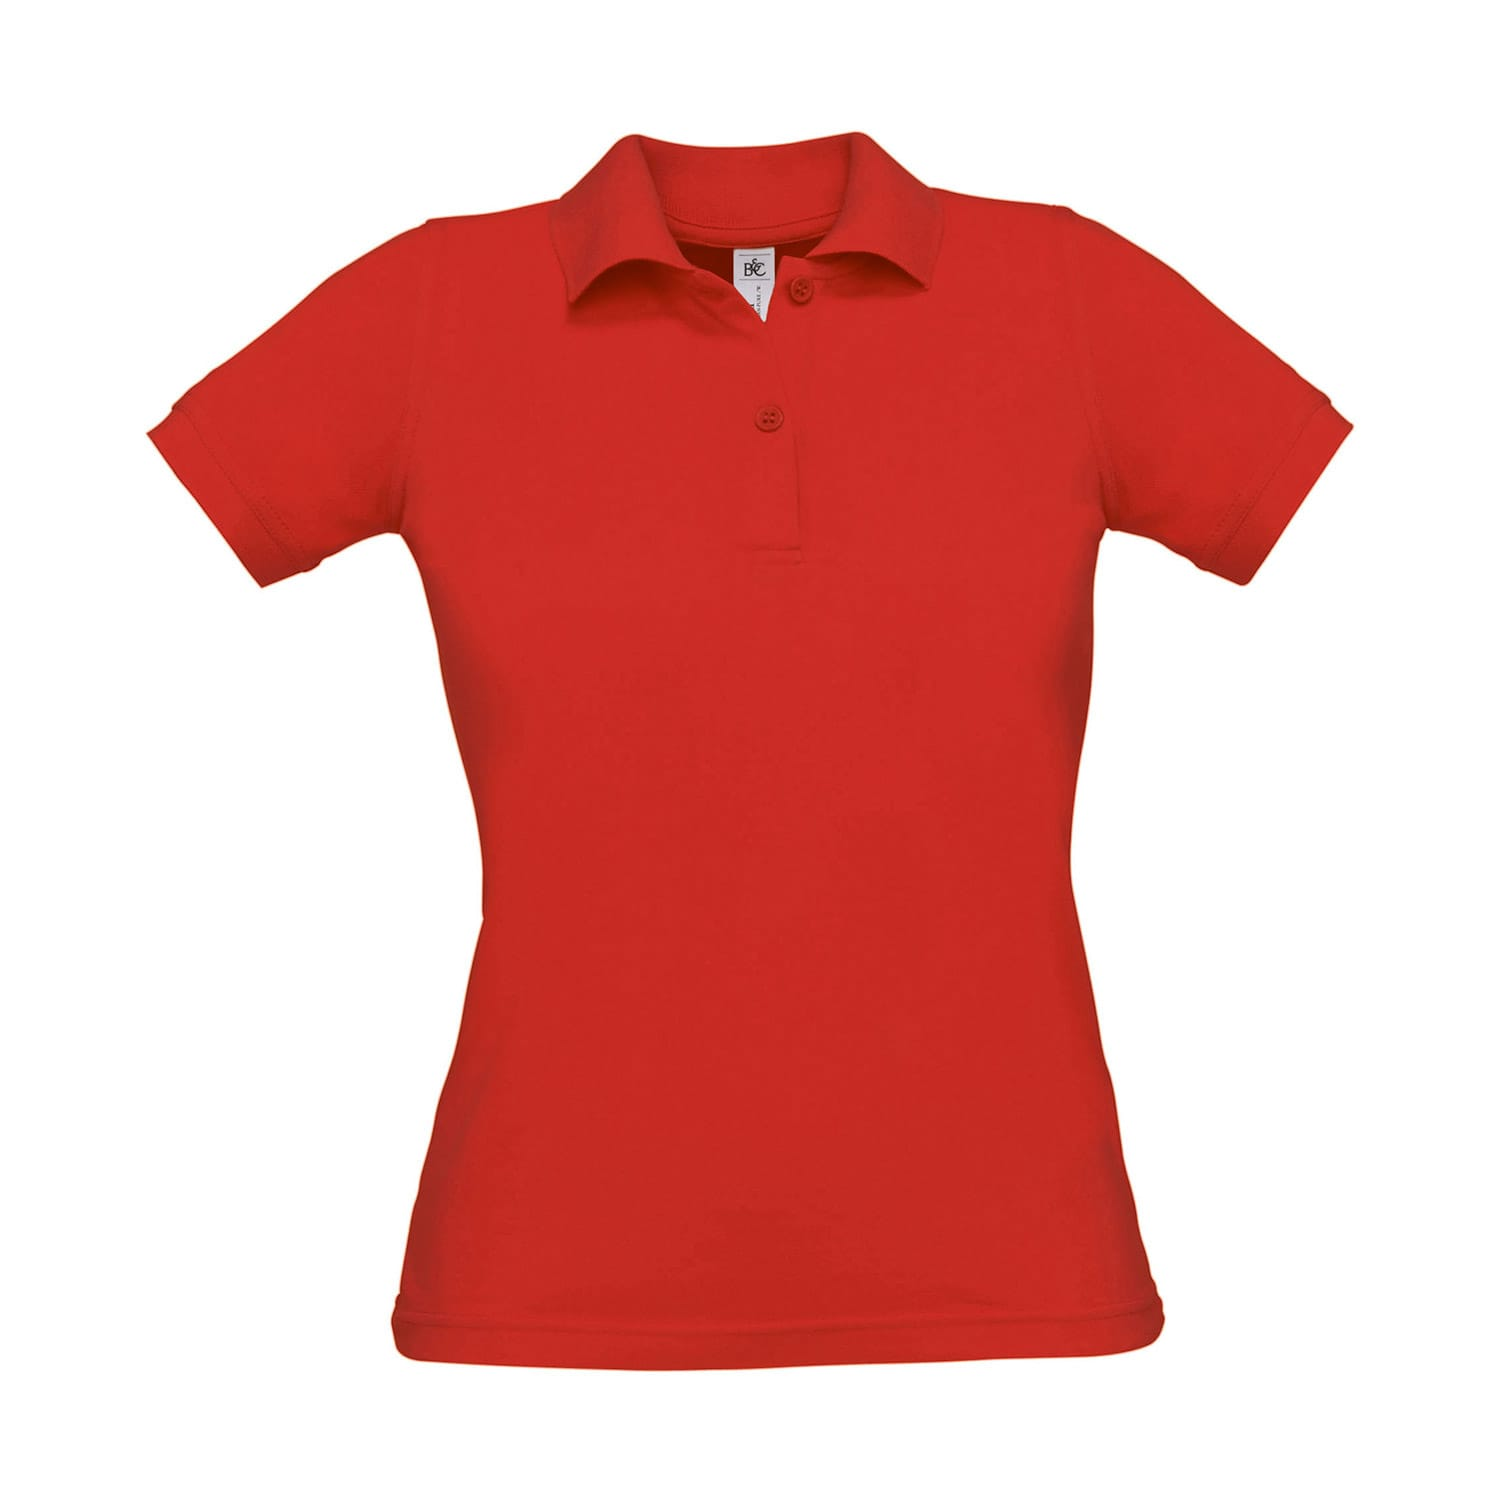 https://static.praxisdienst.com/out/pictures/generated/product/1/1500_1500_100/129298_poloshirt_rot.jpg